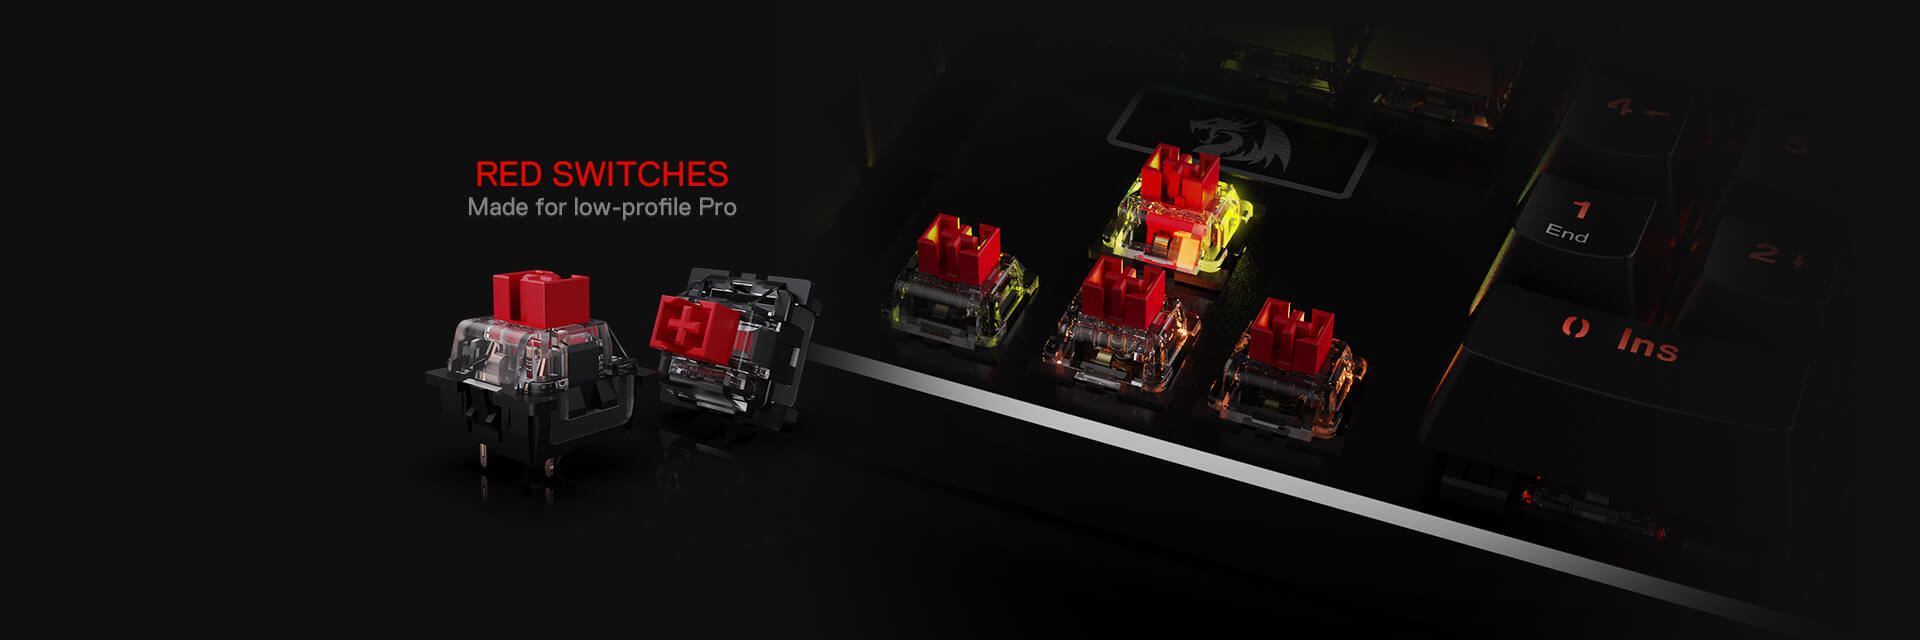 redragon k556 red switches gaming keyboard